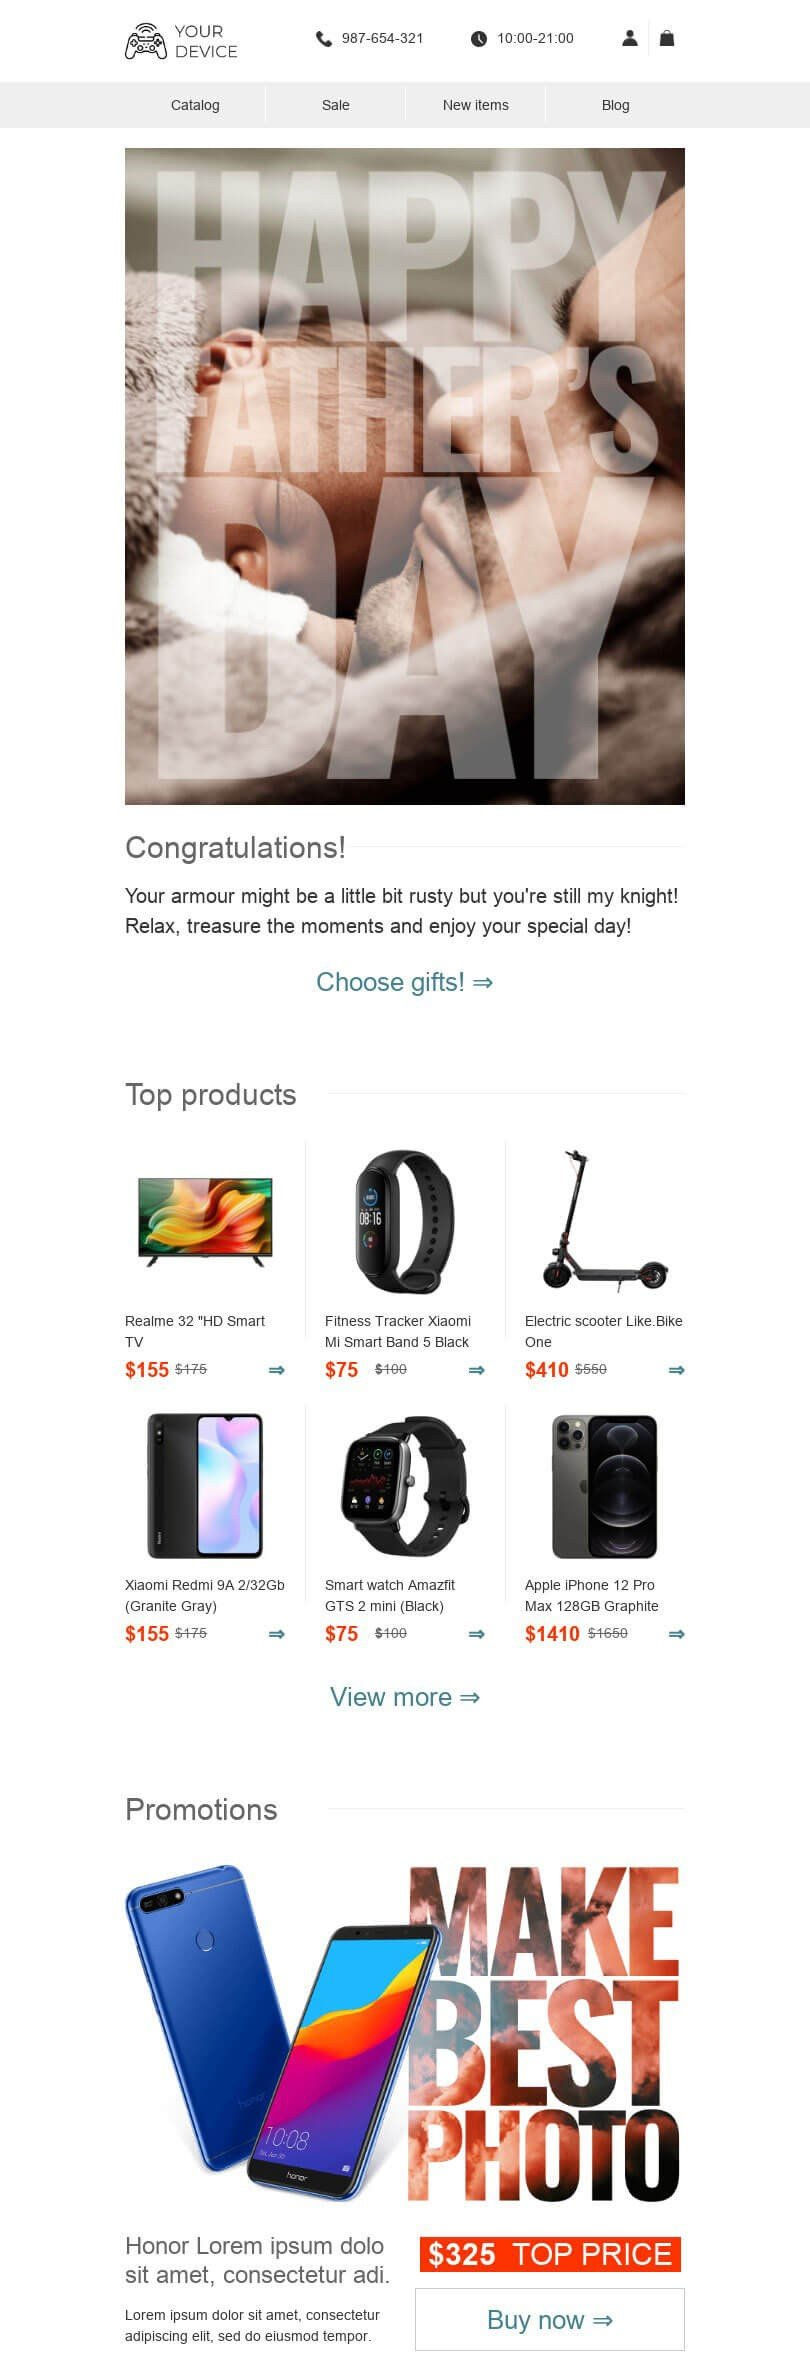 Father's Day Email Template «Father's concern» for Gadgets industry desktop view